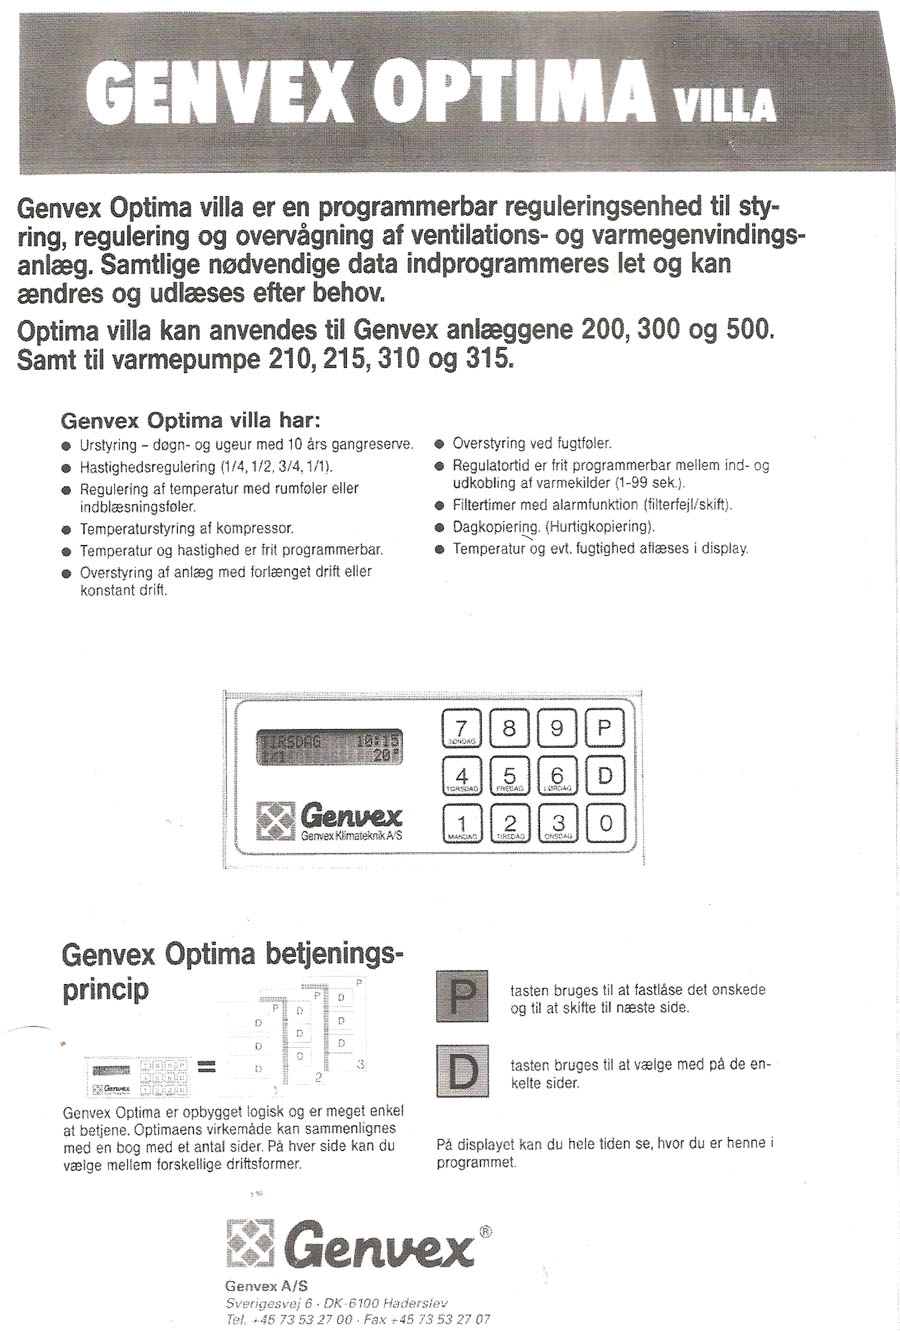 Manual for Genvex optima villa.